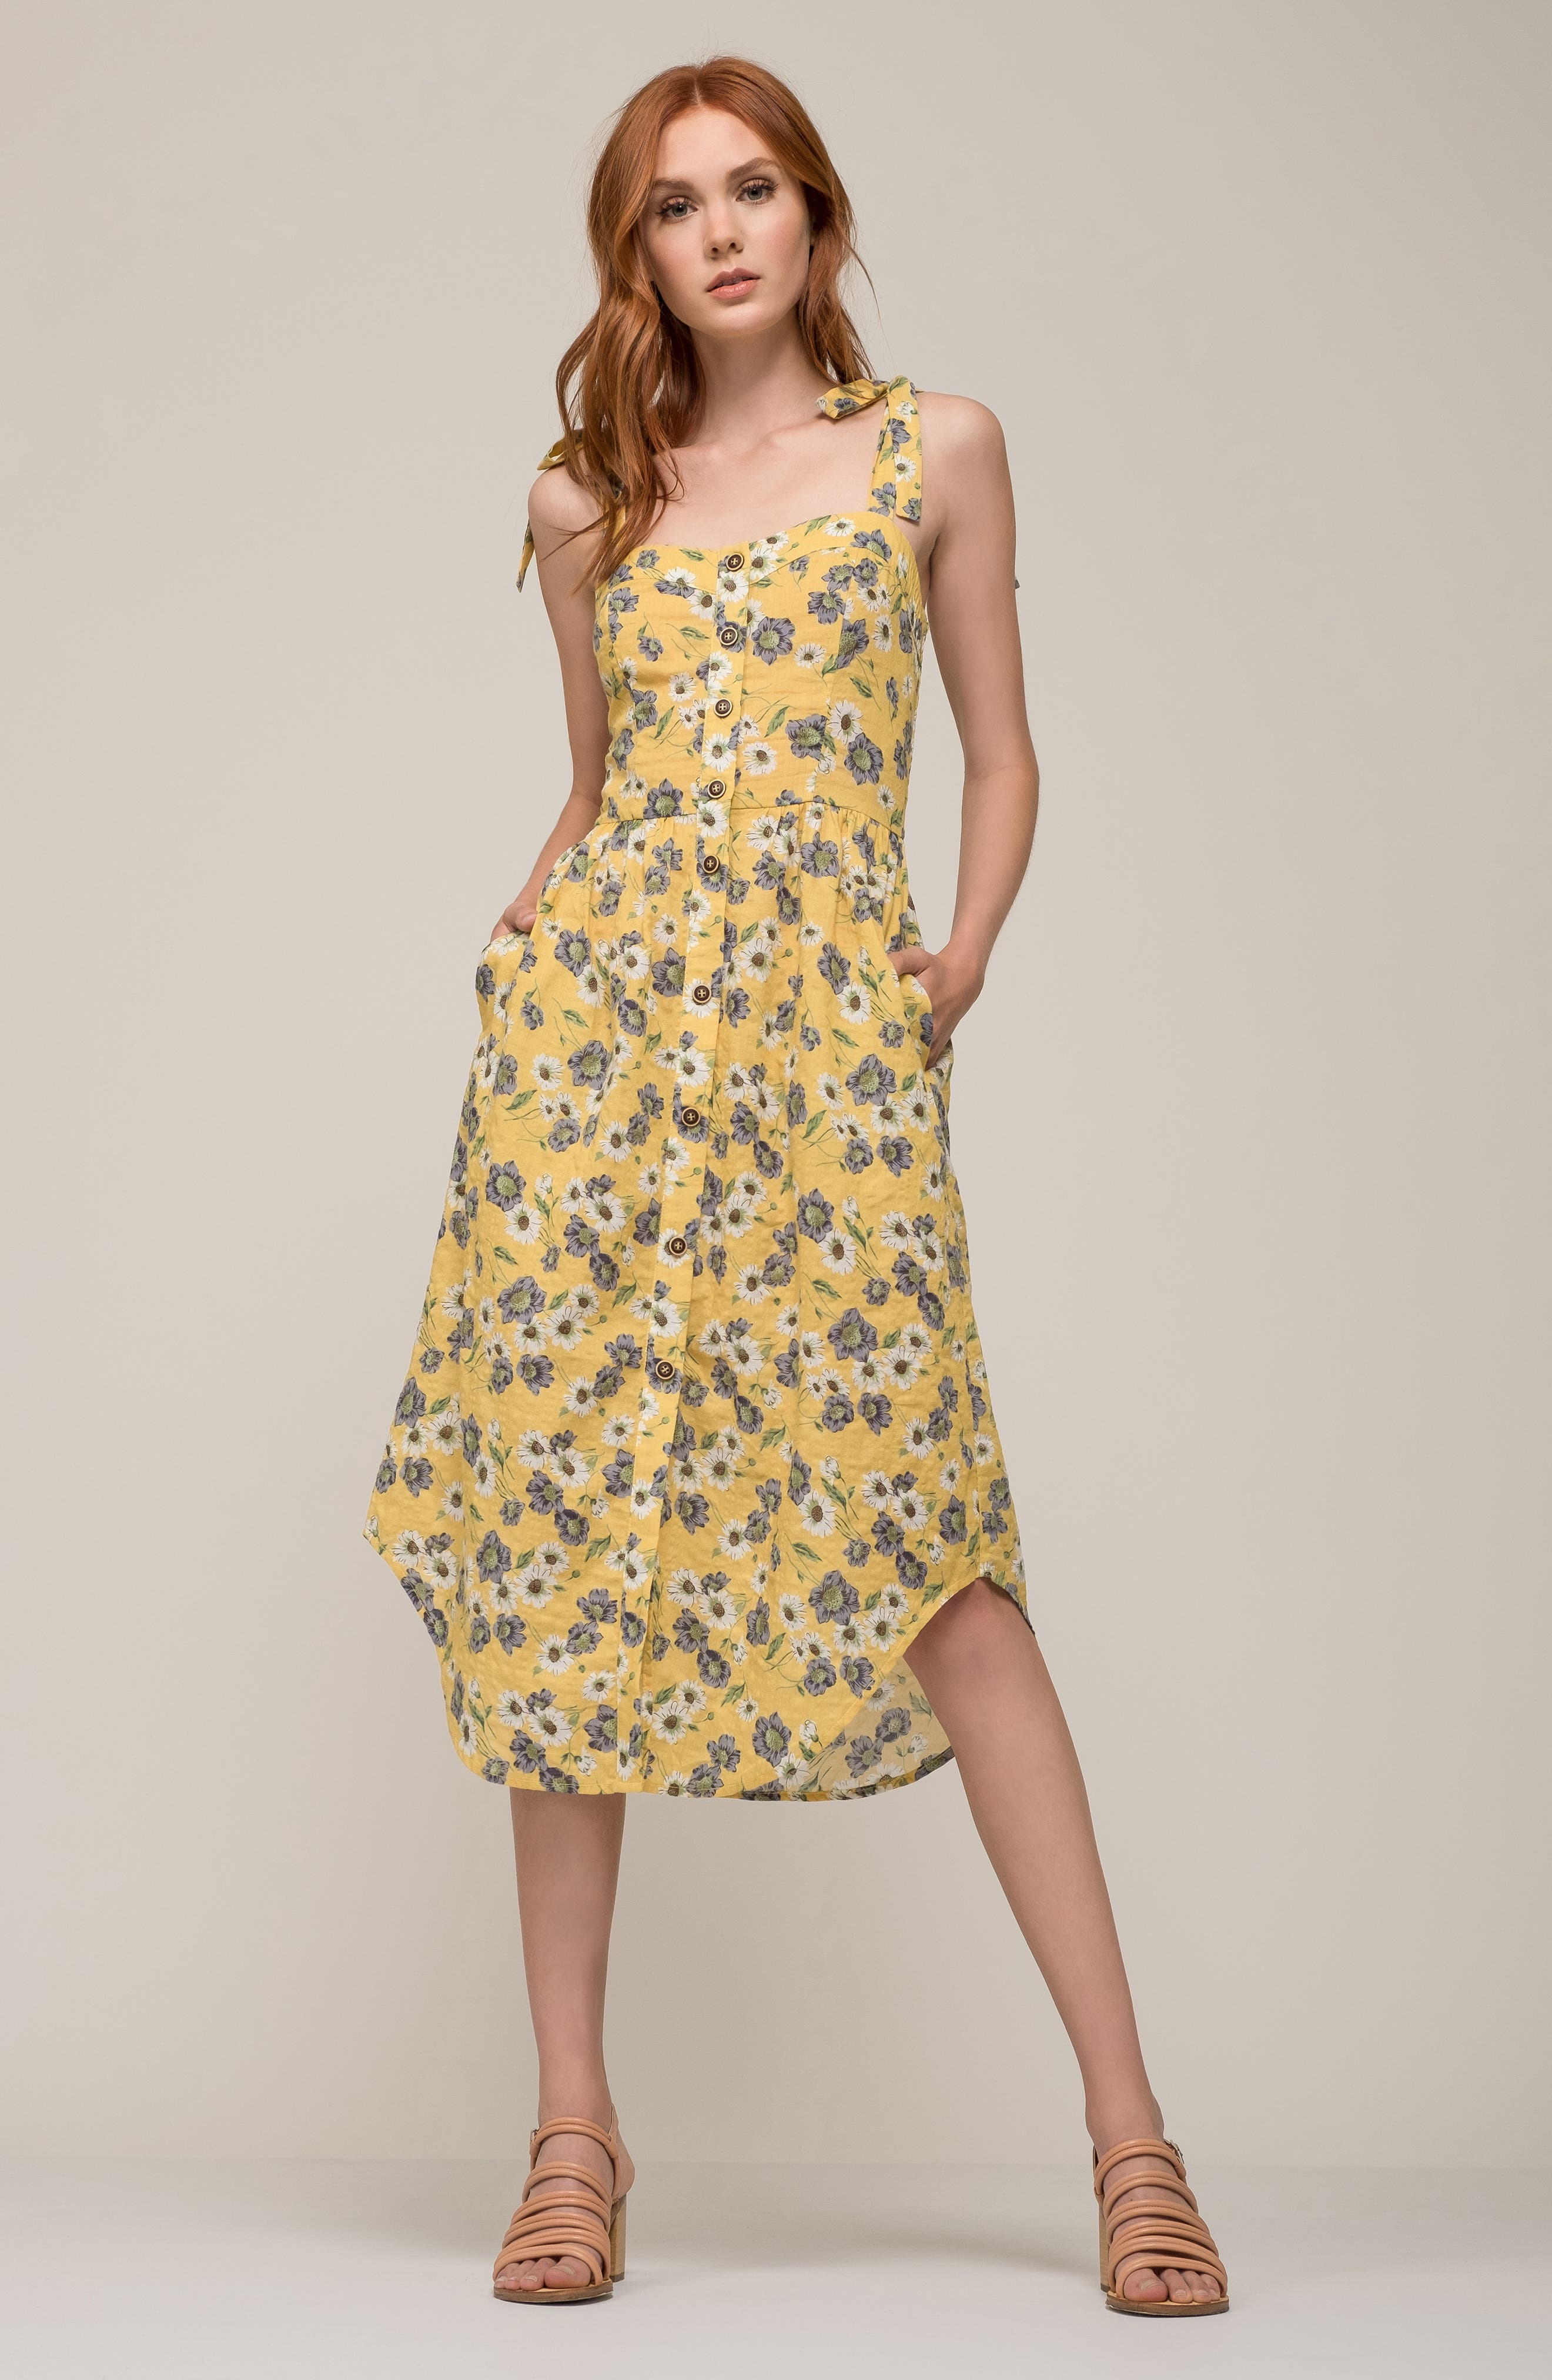 Floral Button Front Sundress,                             Alternate thumbnail 2, color,                             Yellow Floral